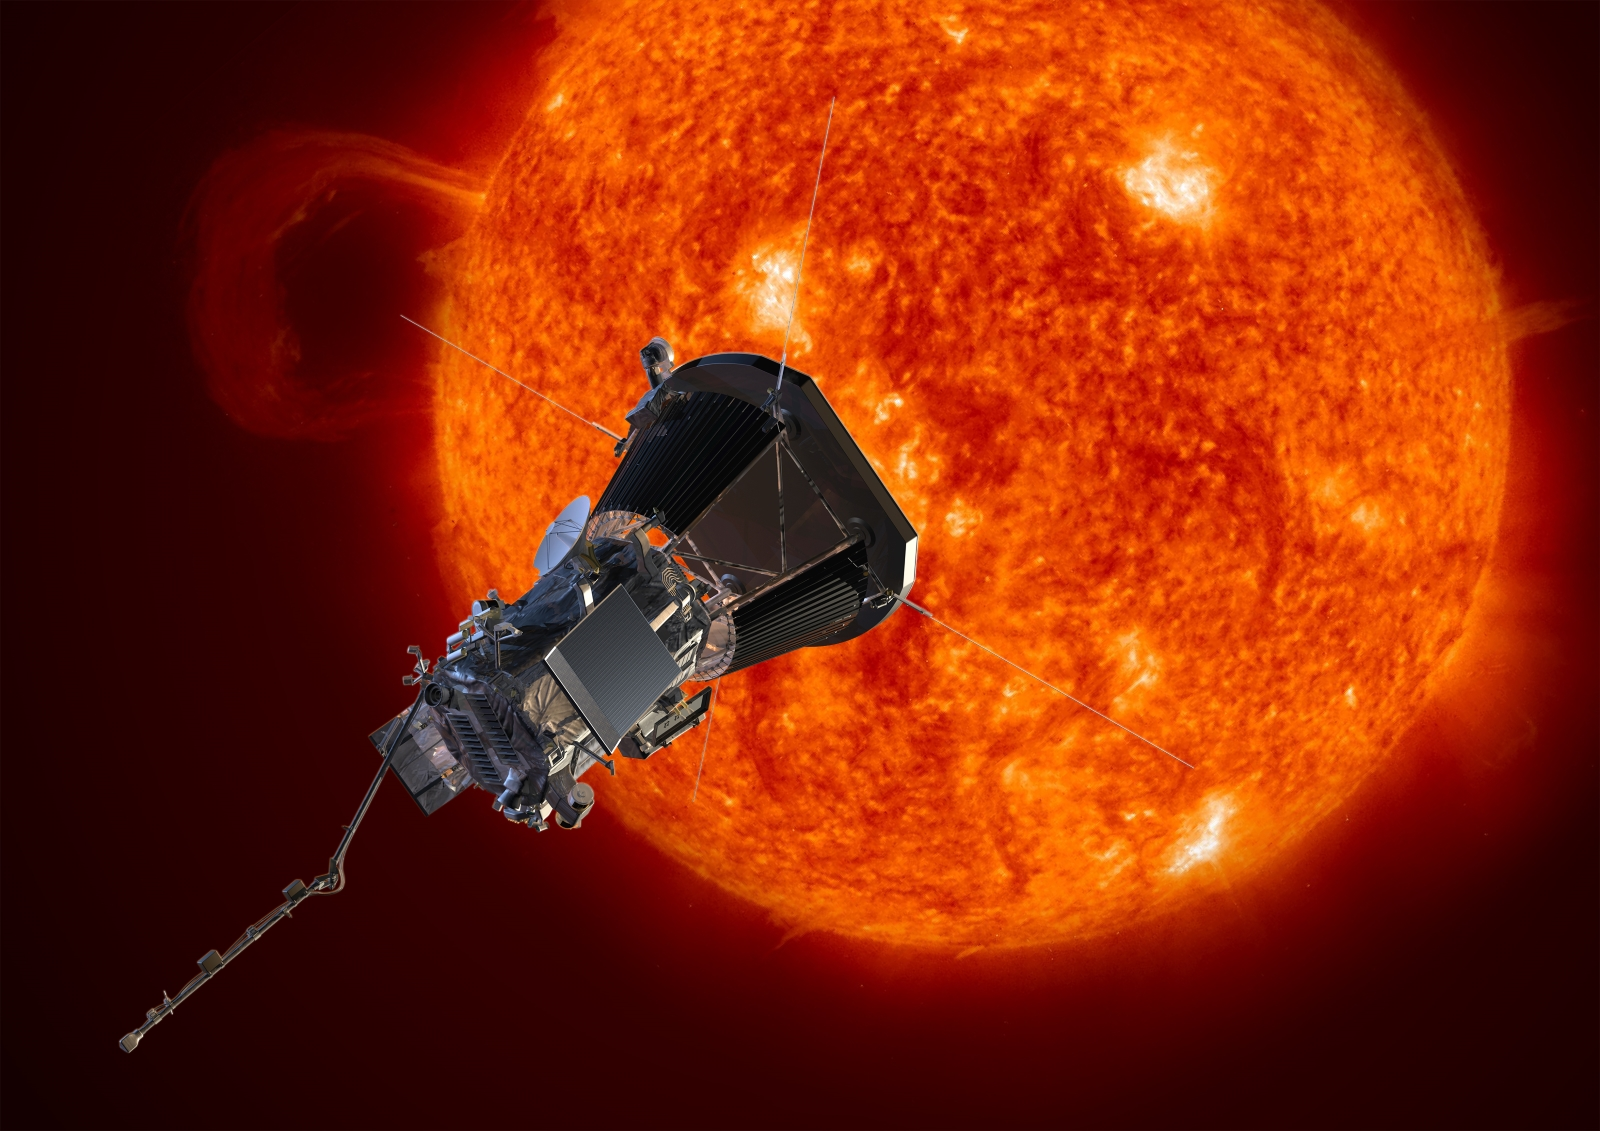 The Parker Solar Probe spacecraft approaching the Sun